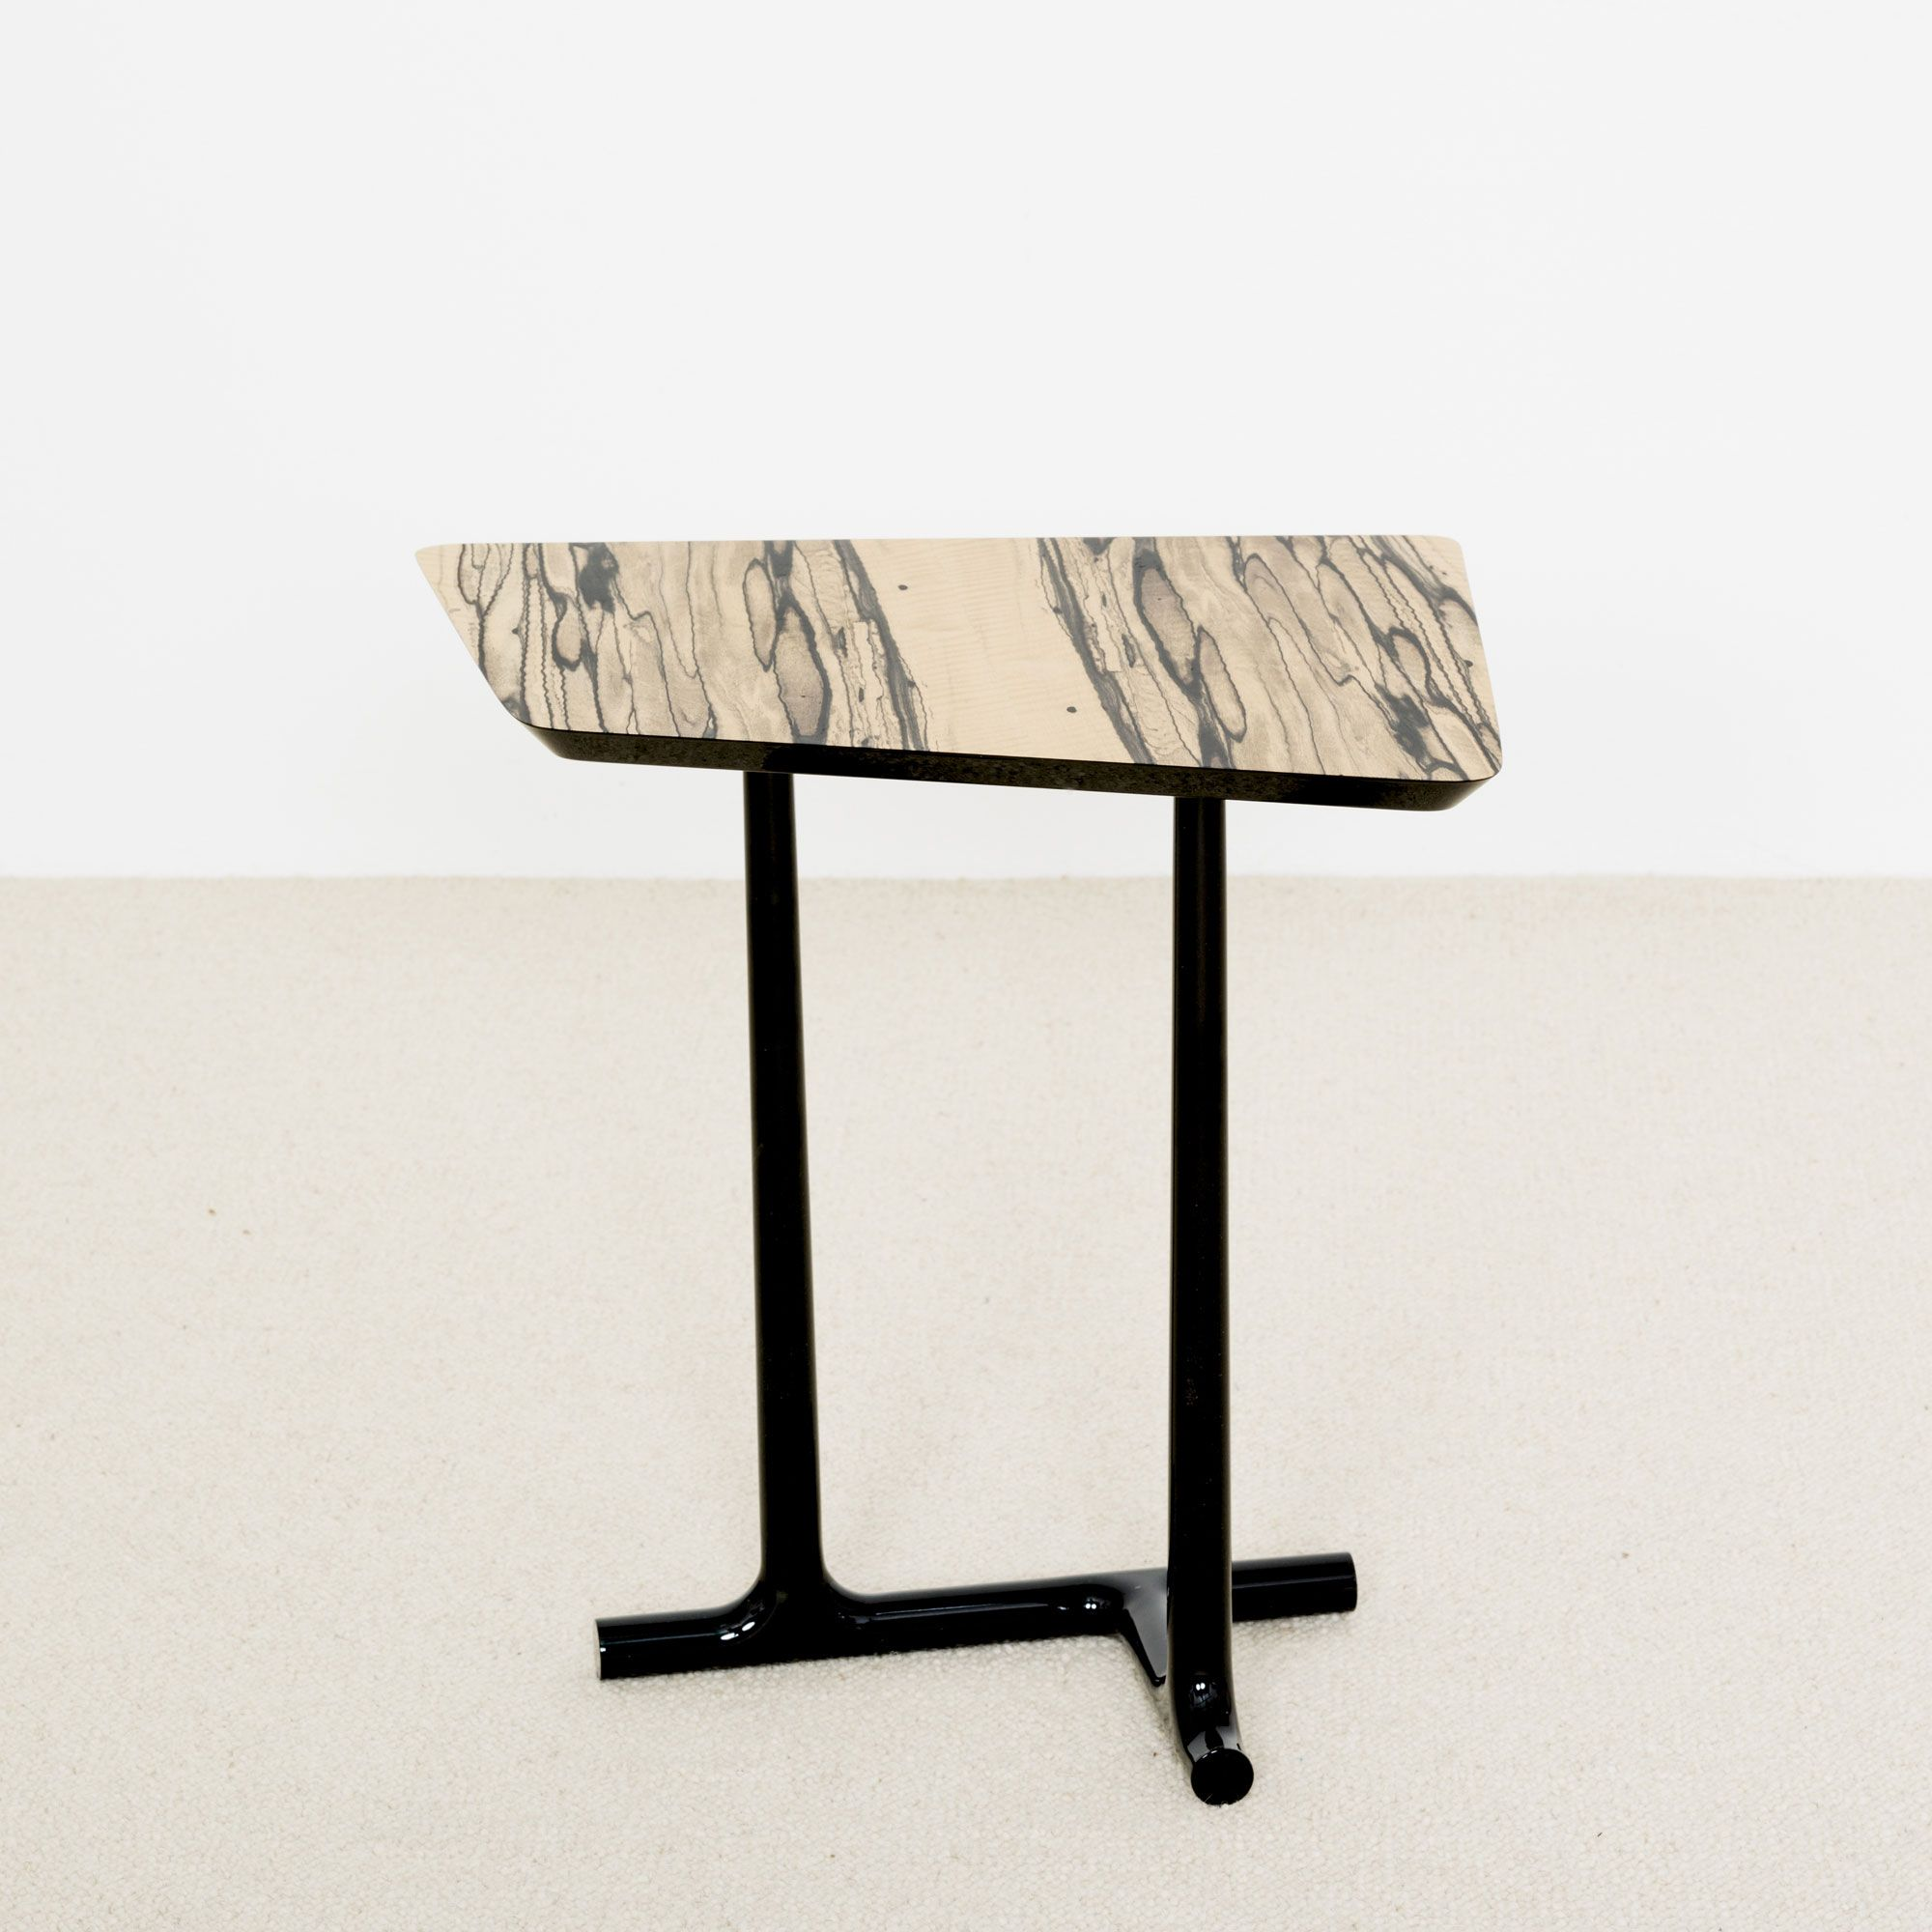 Yte Table Appoint Christophe Delcourt Furniture